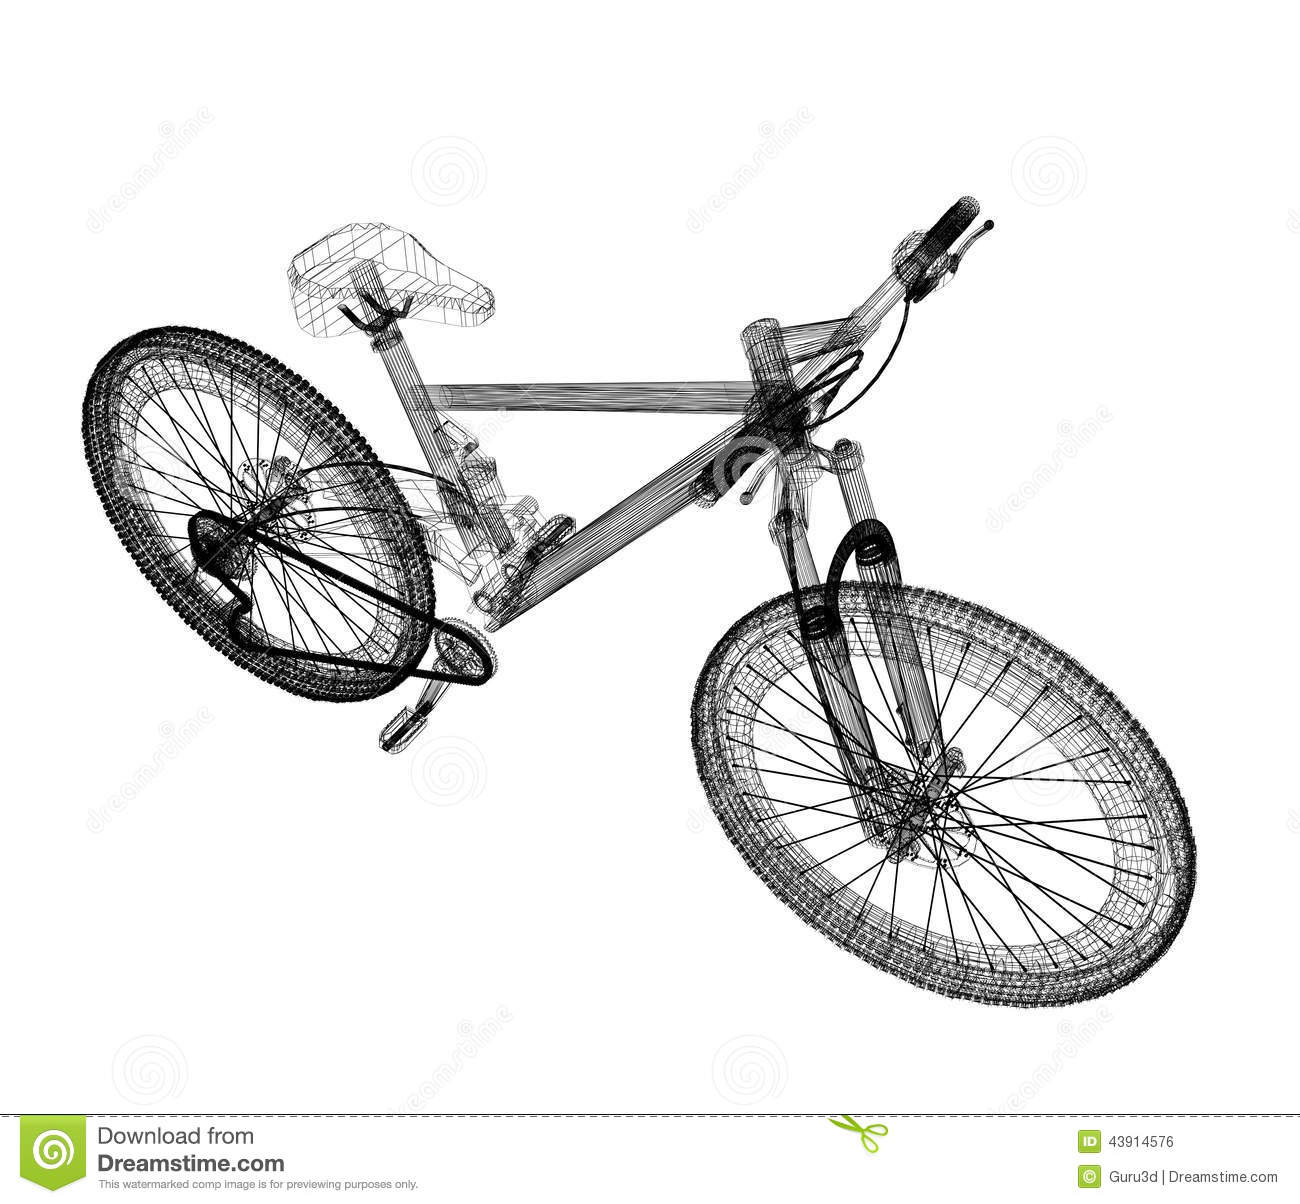 bicycle as d wire frame object isolated 43914576 wire mesh industries 9 on wire mesh industries